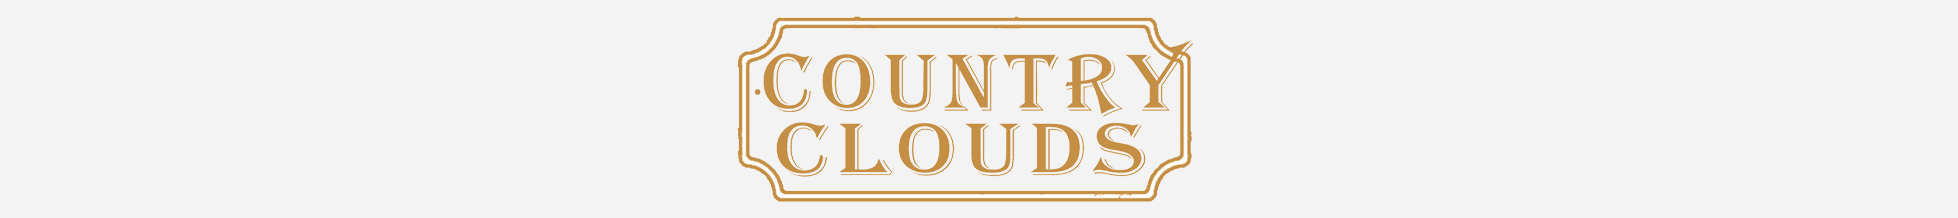 country-clouds.jpg